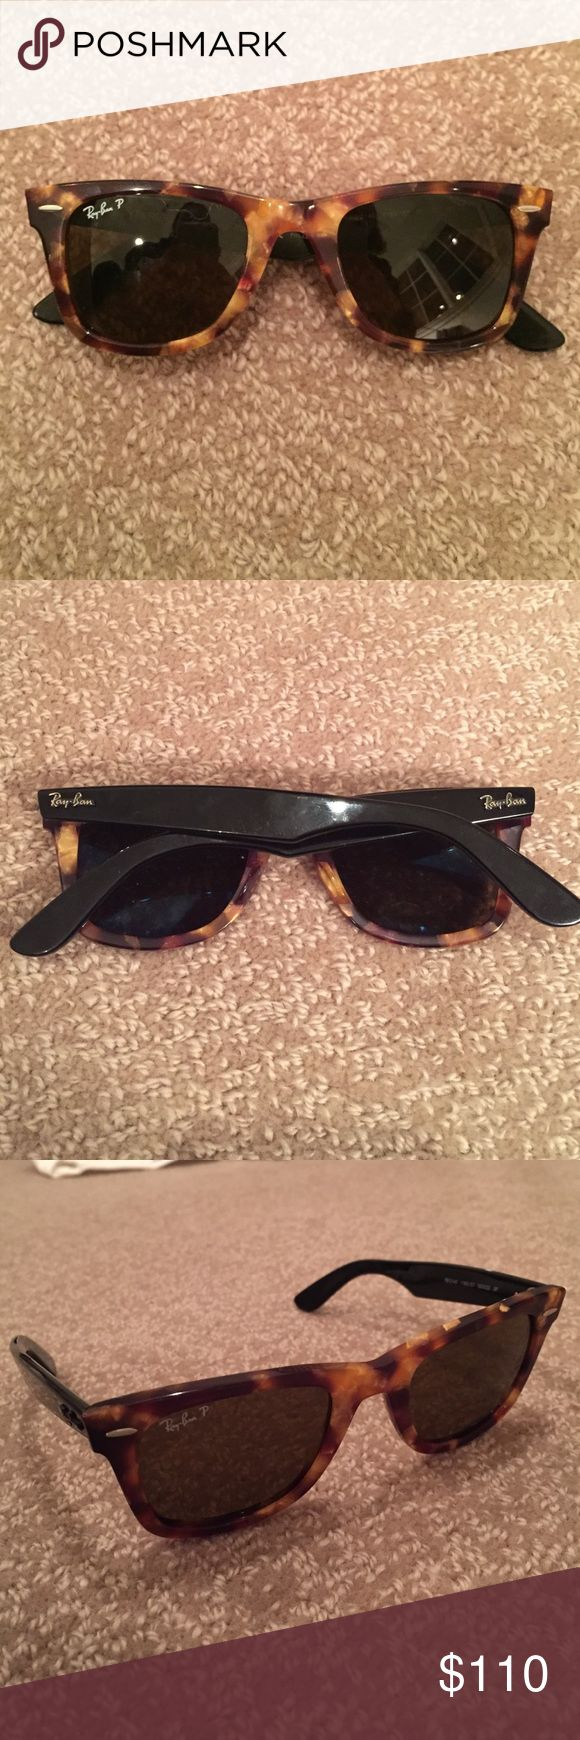 ray ban polarized tortoise shell sunglasses  polarized tortoise shell ray ban wayfarers rarely worn ray ban wayfarers. polarized with green